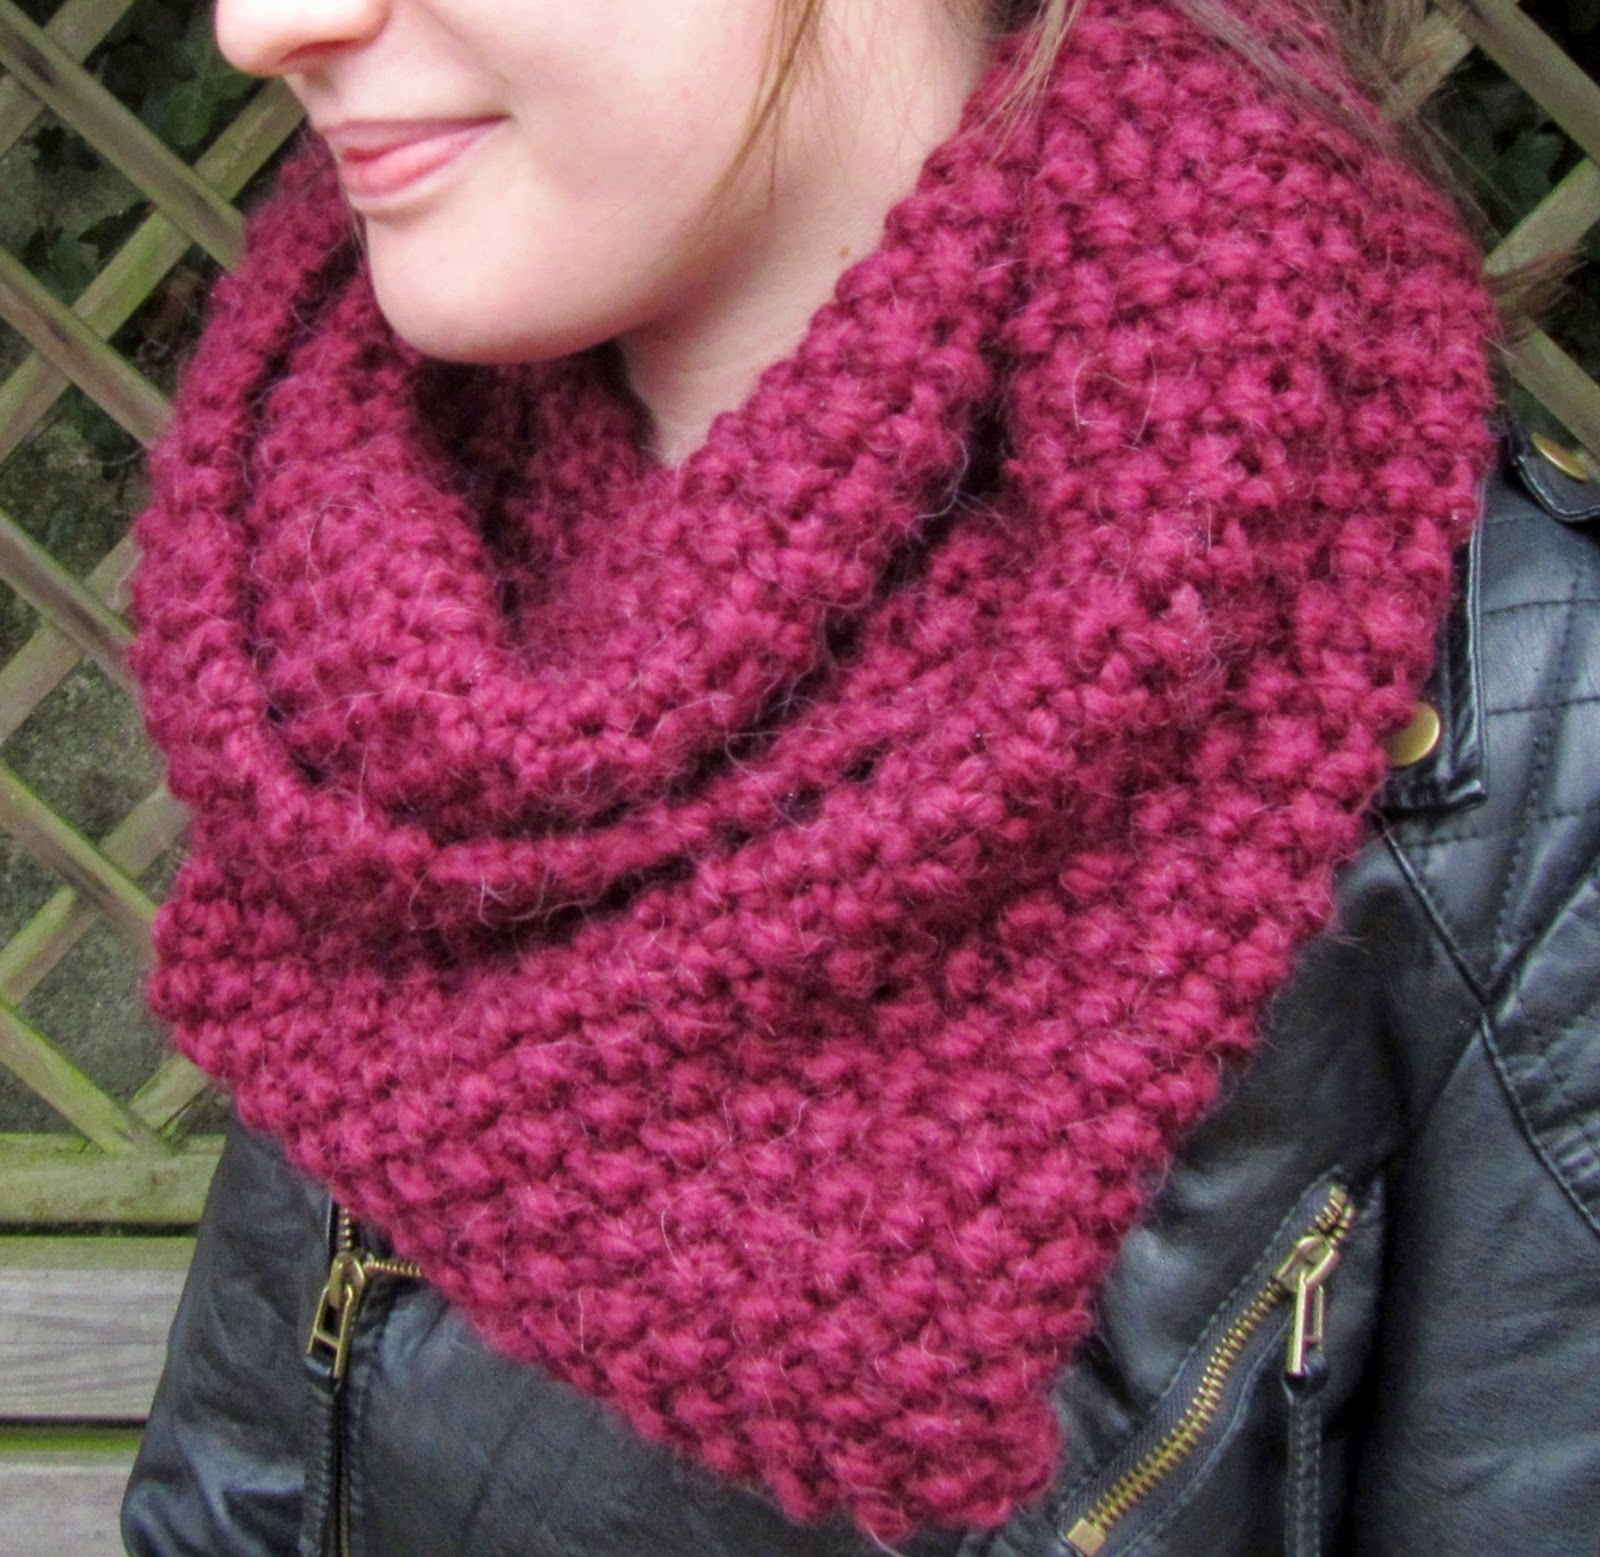 Photo of model wearing knitted cowl